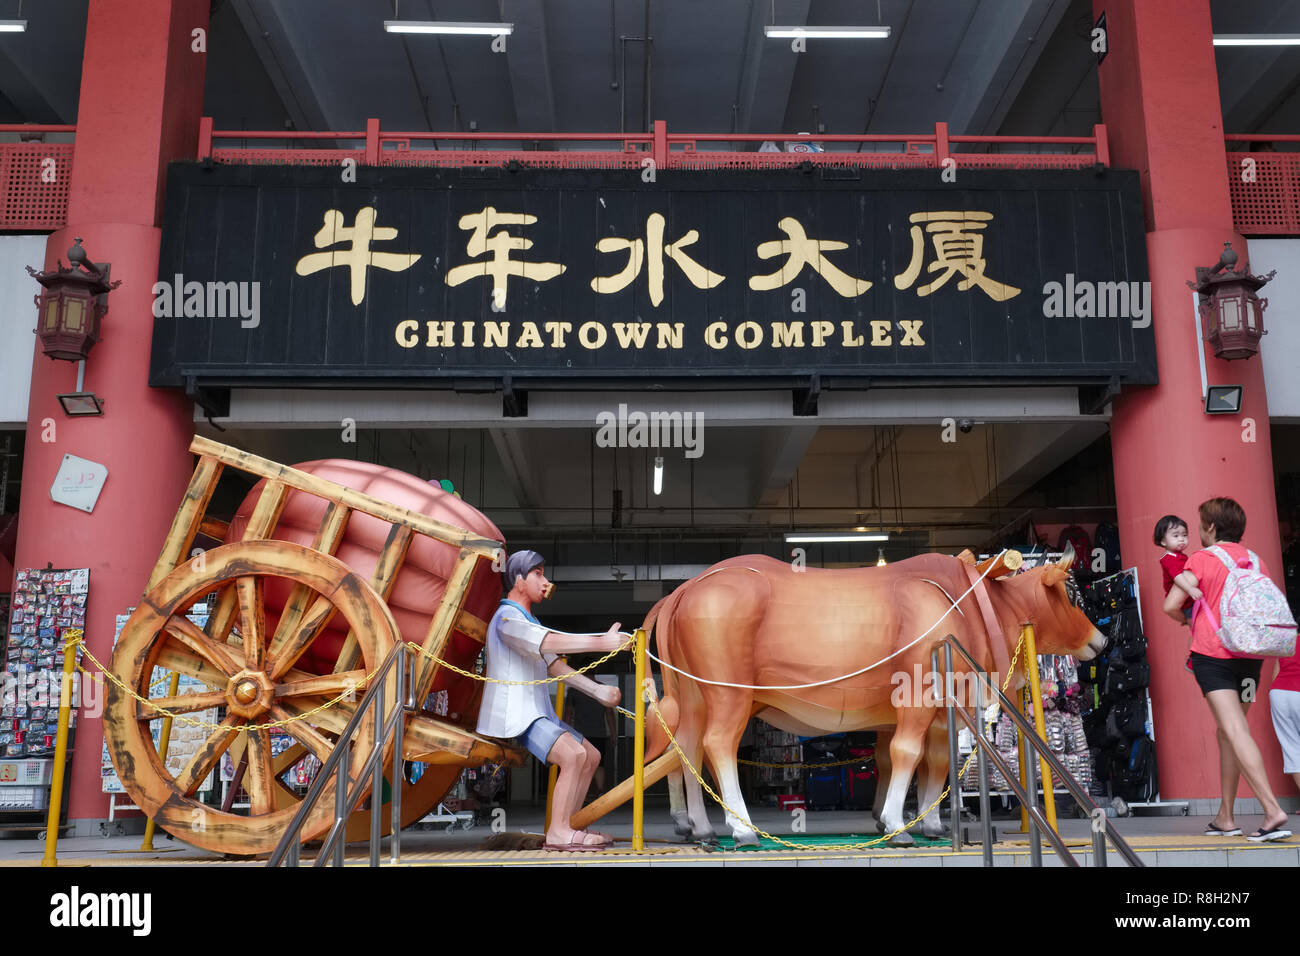 Depiction of an old-time bullock cart at Chinatown Complex, a shopping center in Chinatown, Singapore - Stock Image